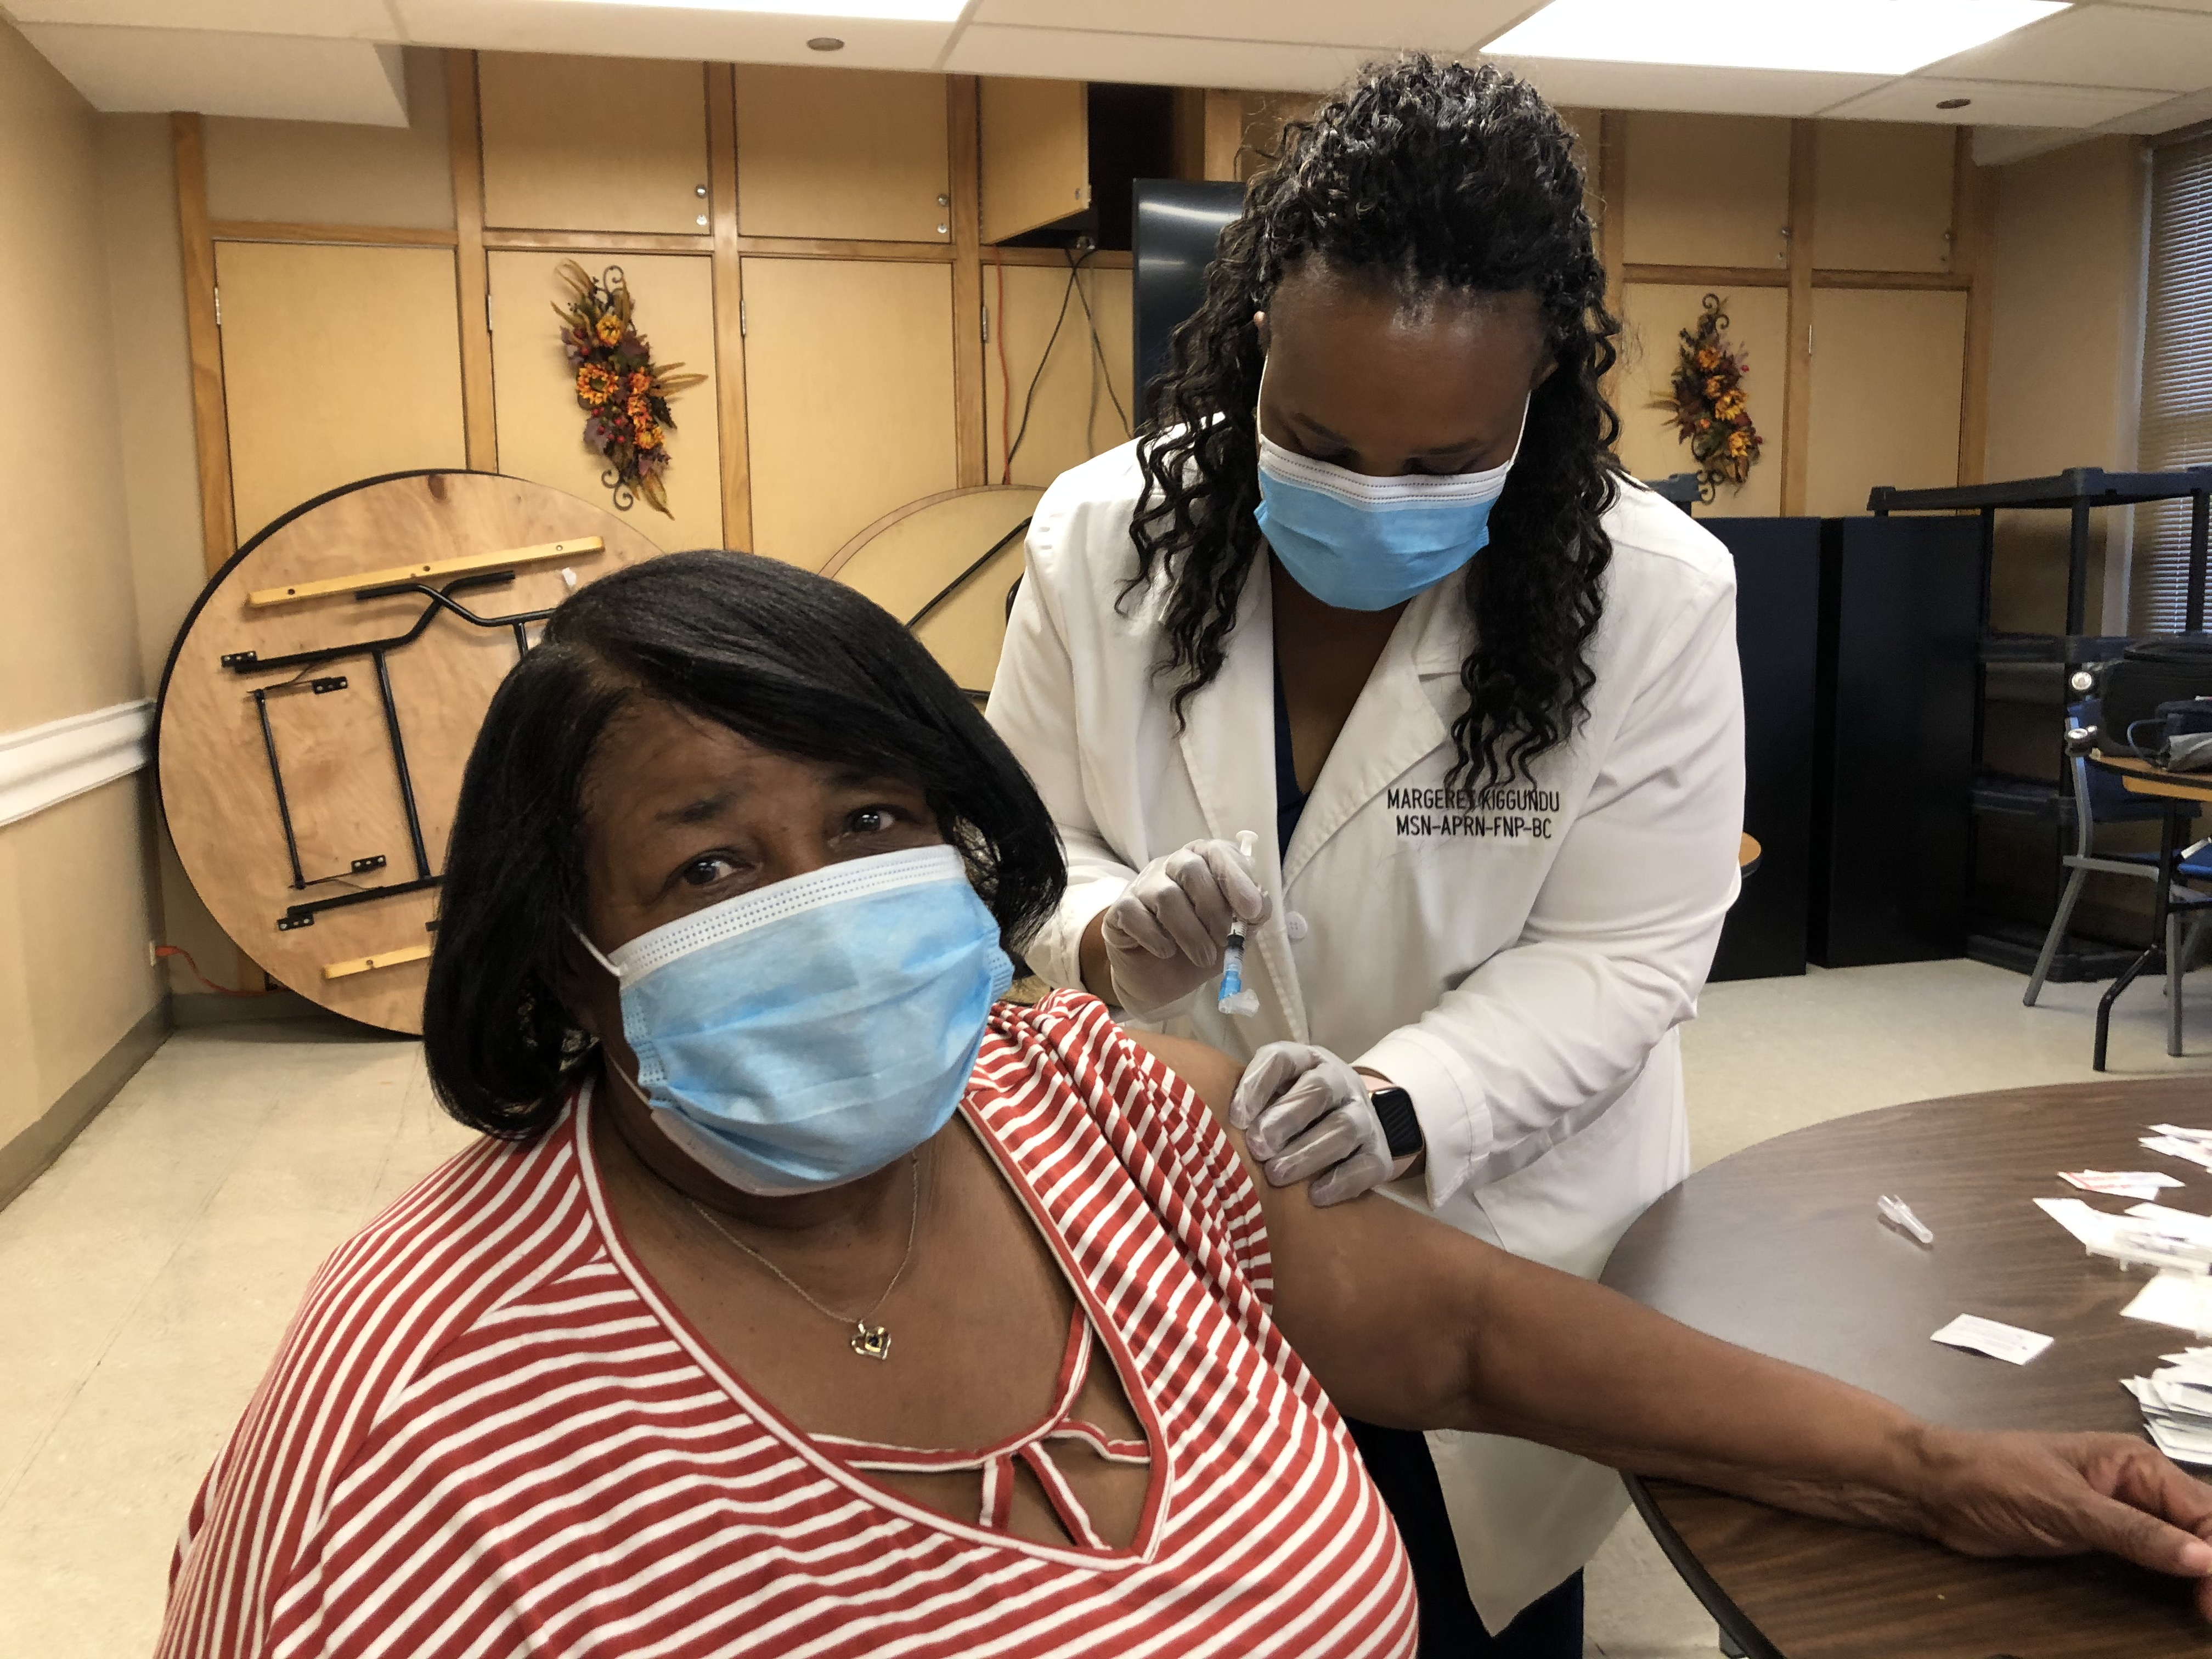 A worried Yvonne Johnson braces for her vaccination at the CHA's Alfreda Burnett Duster Apartments, where COVID-19 shots were being administered as part of the city of Chicago's senior outreach efforts.